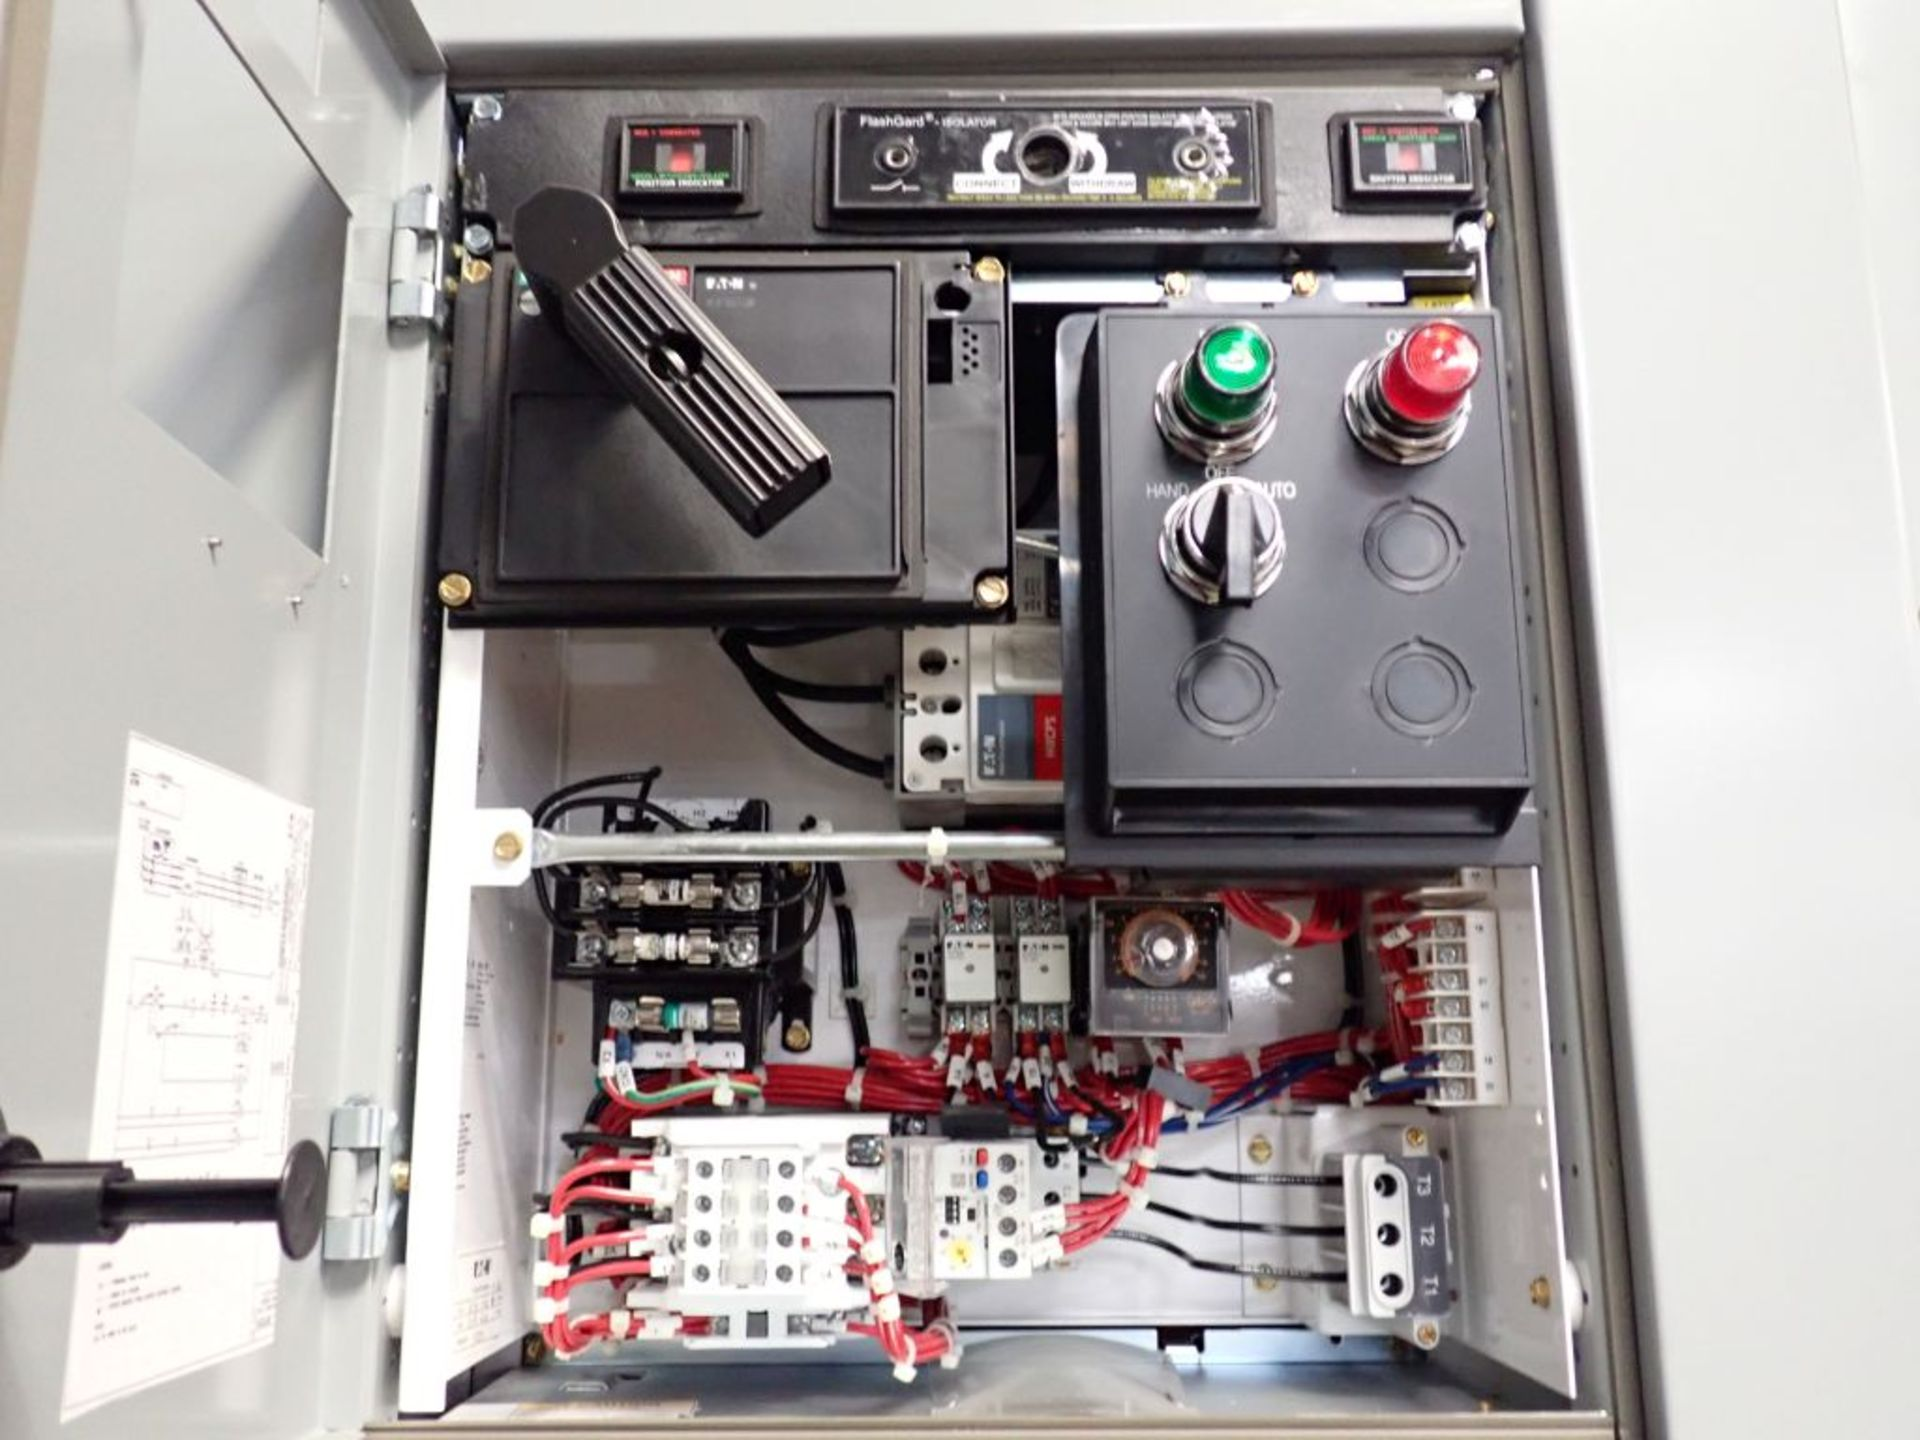 Eaton Freedom 2100 Series Motor Control Center | (11) F206-30A-10HP; (5) F206-15A-10HP; (1) SVX900- - Image 37 of 102